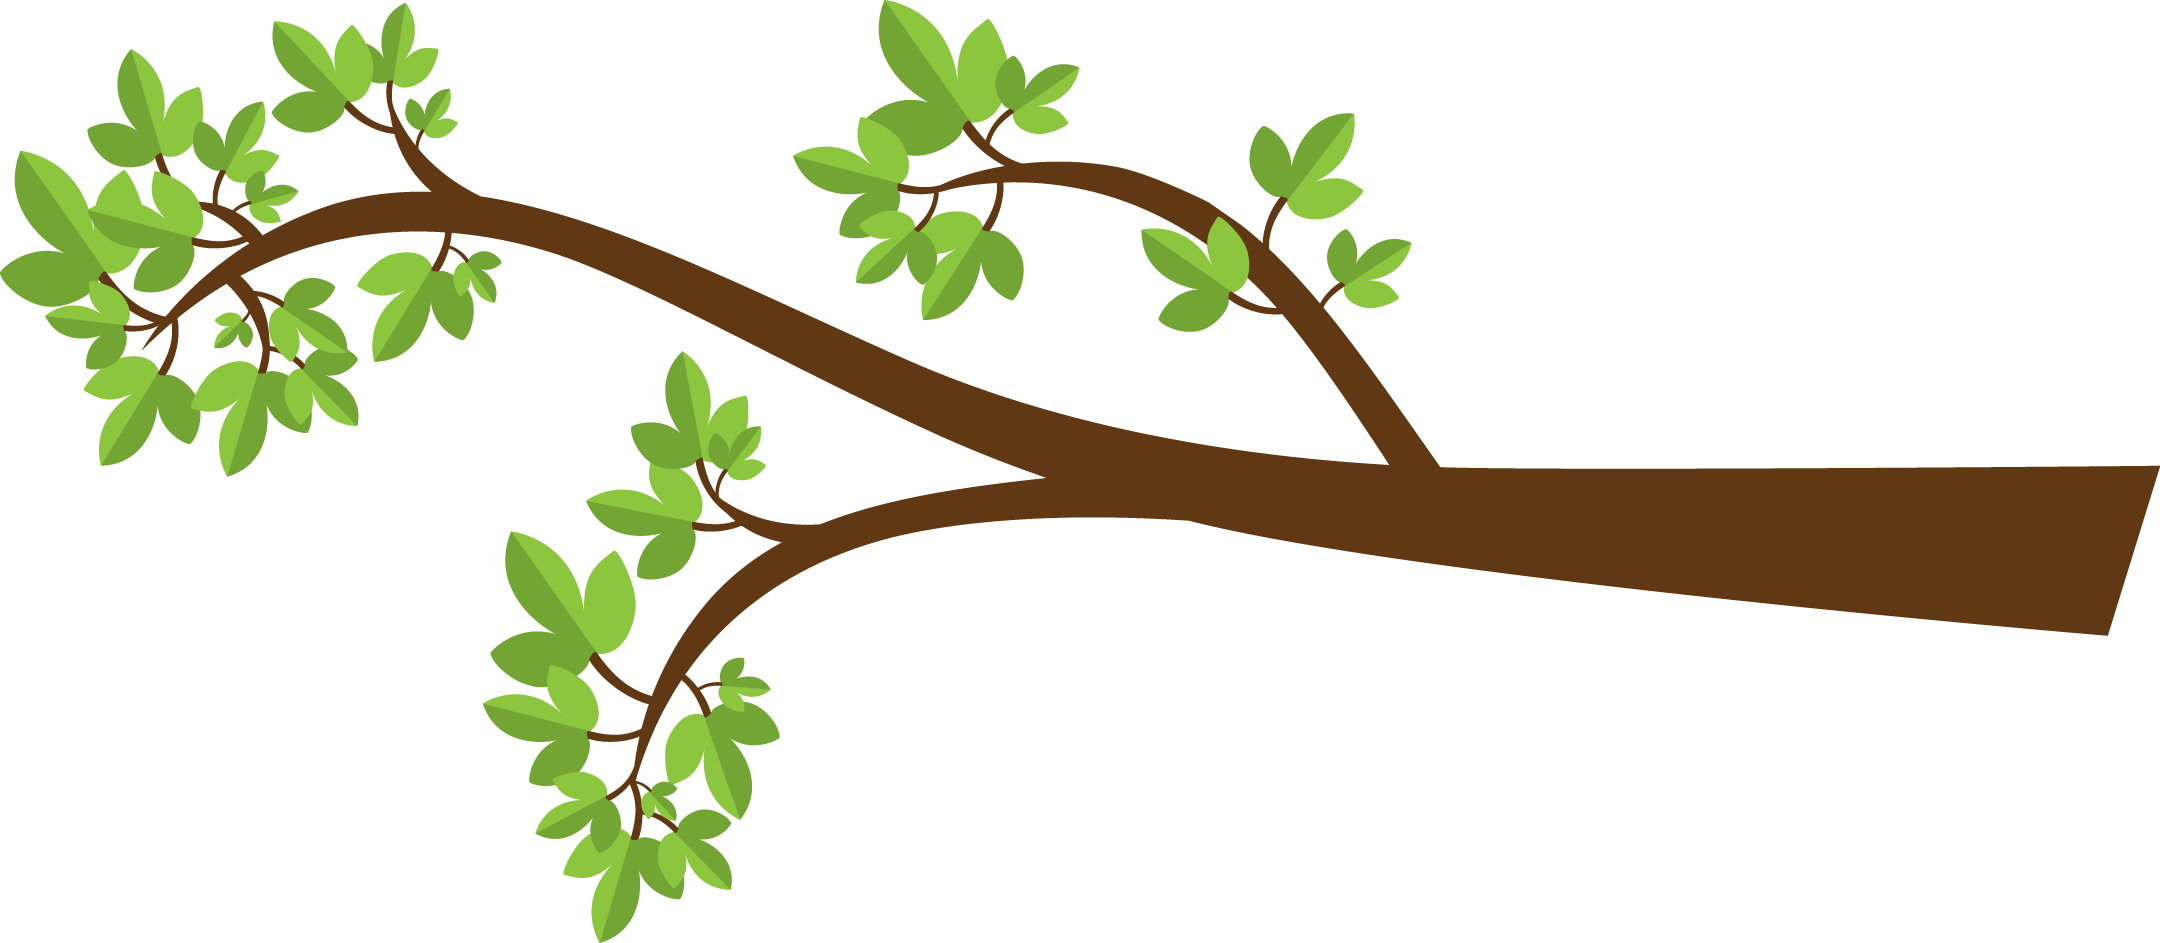 Woodland clipart leafy tree. Limb fall branch clip